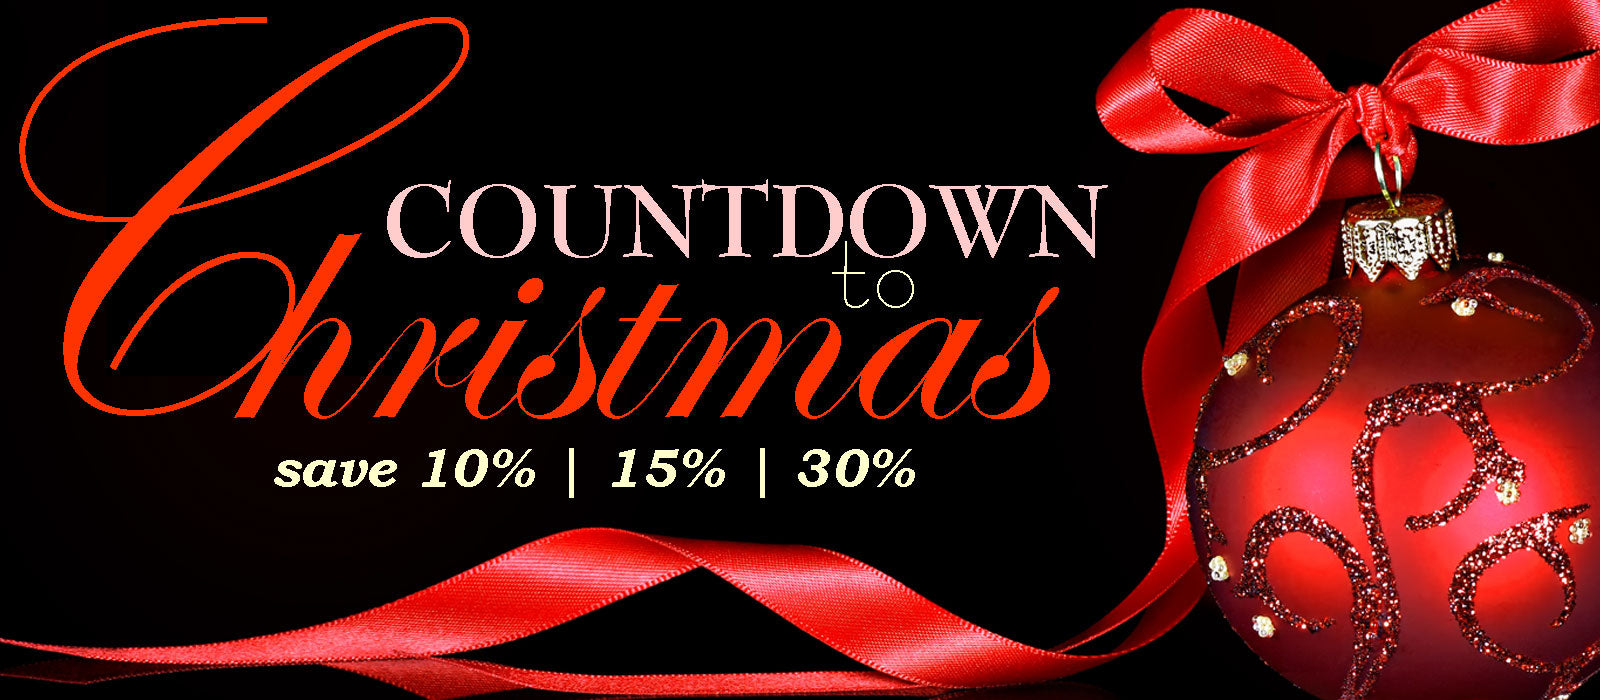 Save up to 30% during our Countdown to Christmas sale... hurry though, it ends soon!